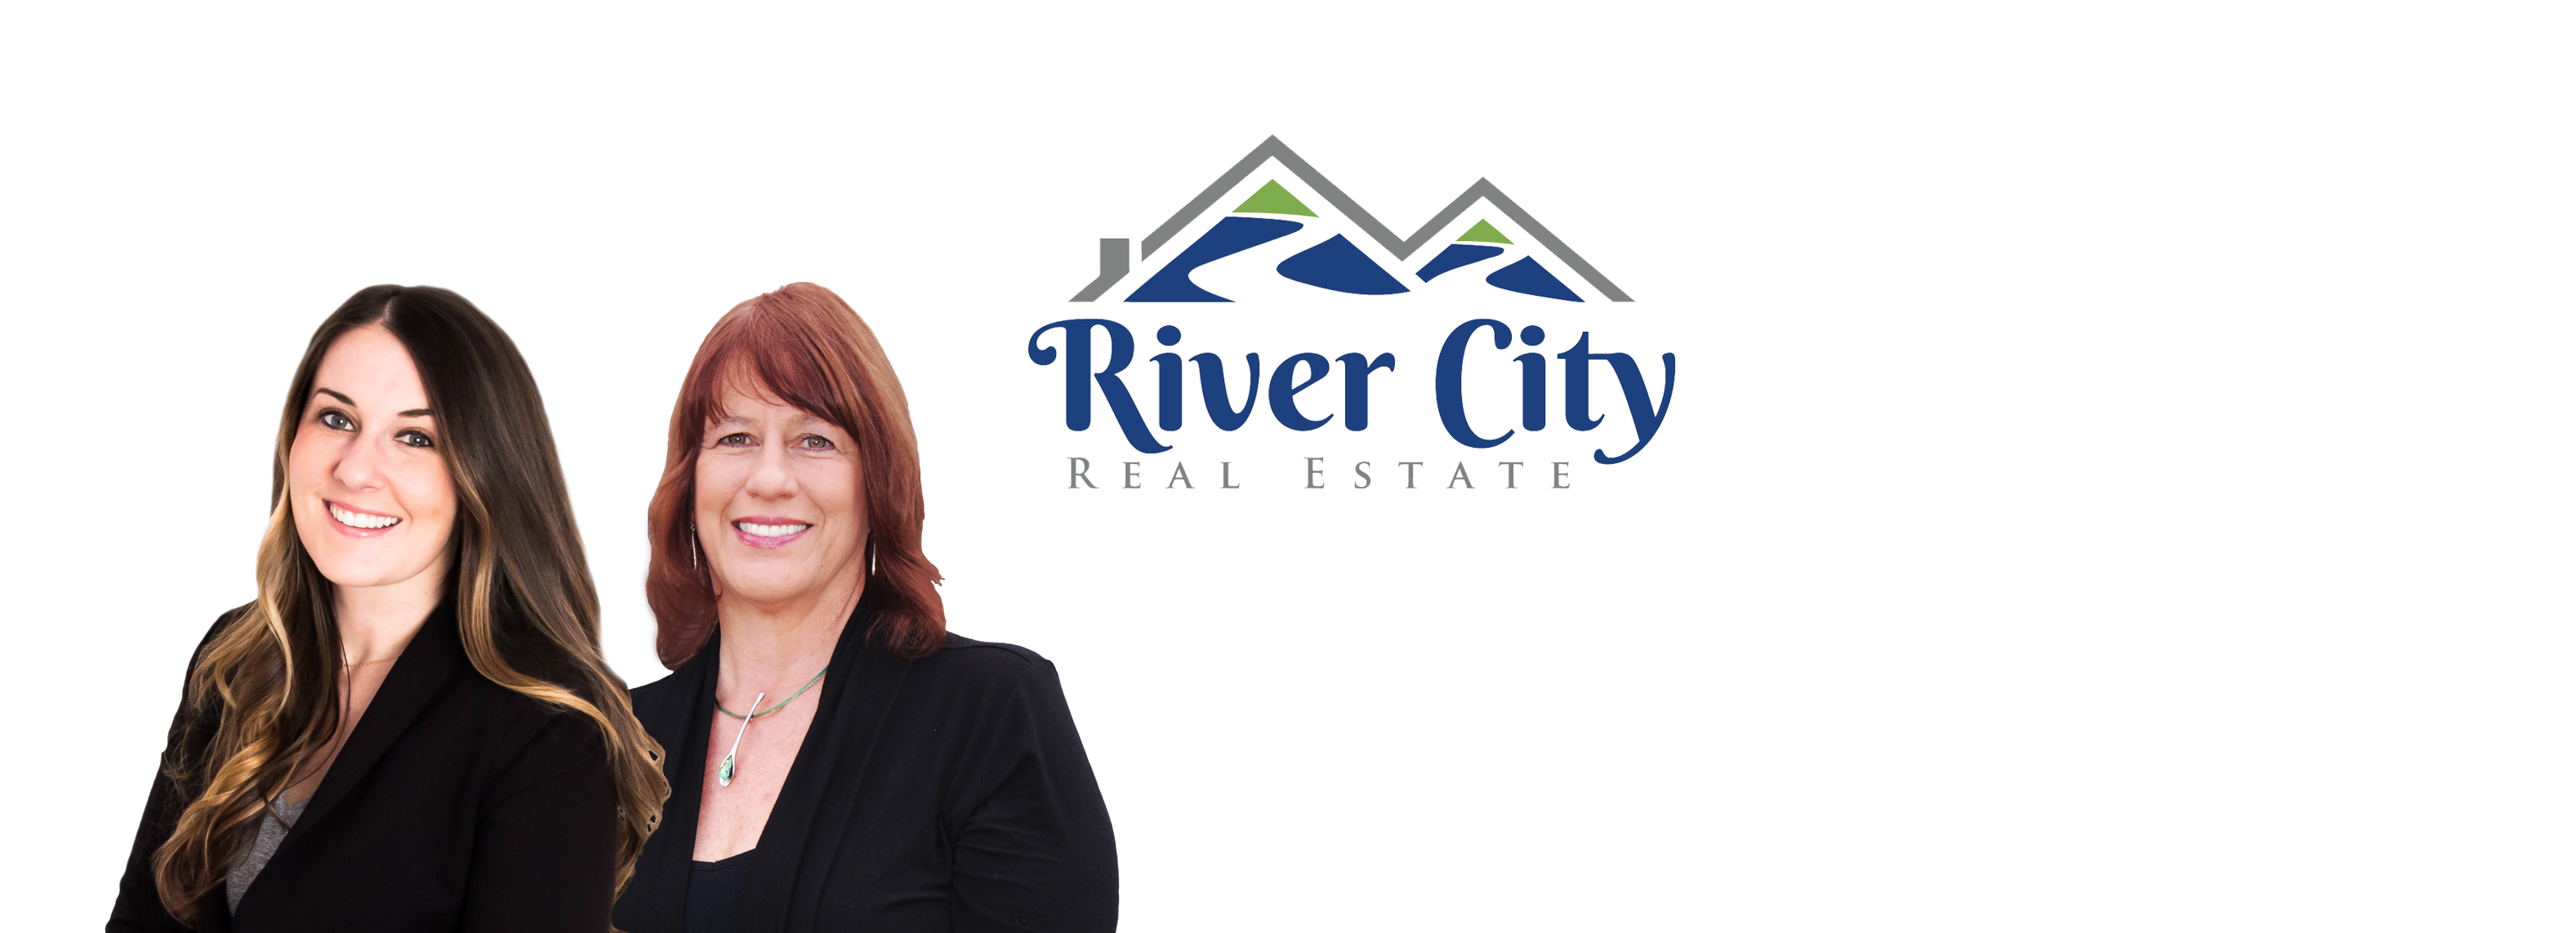 River City Real Estate agents Lori Curtis and Sara Oliver